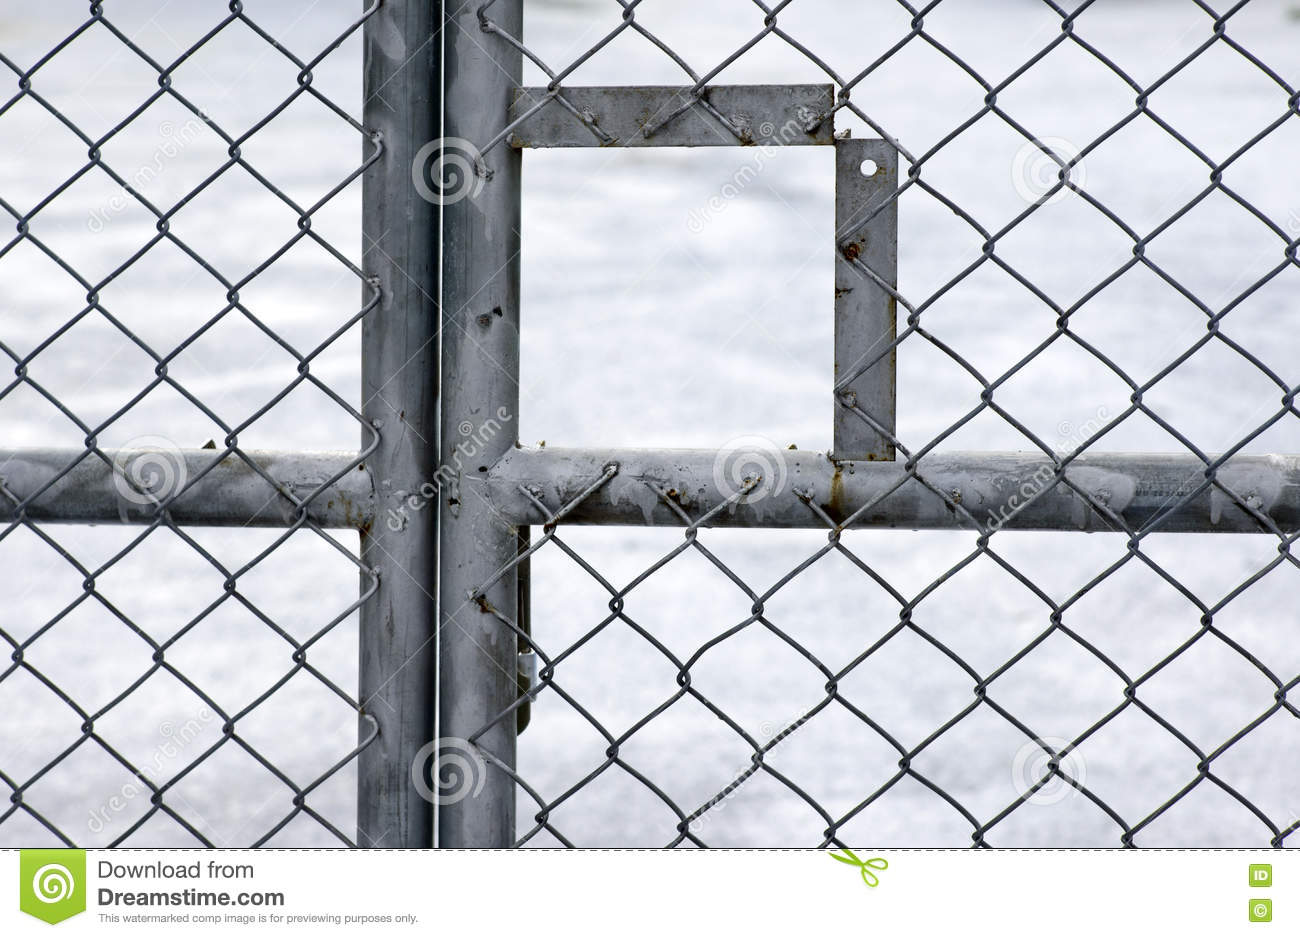 Metal wire fence stock photo. Image of material, closeup - 76353706